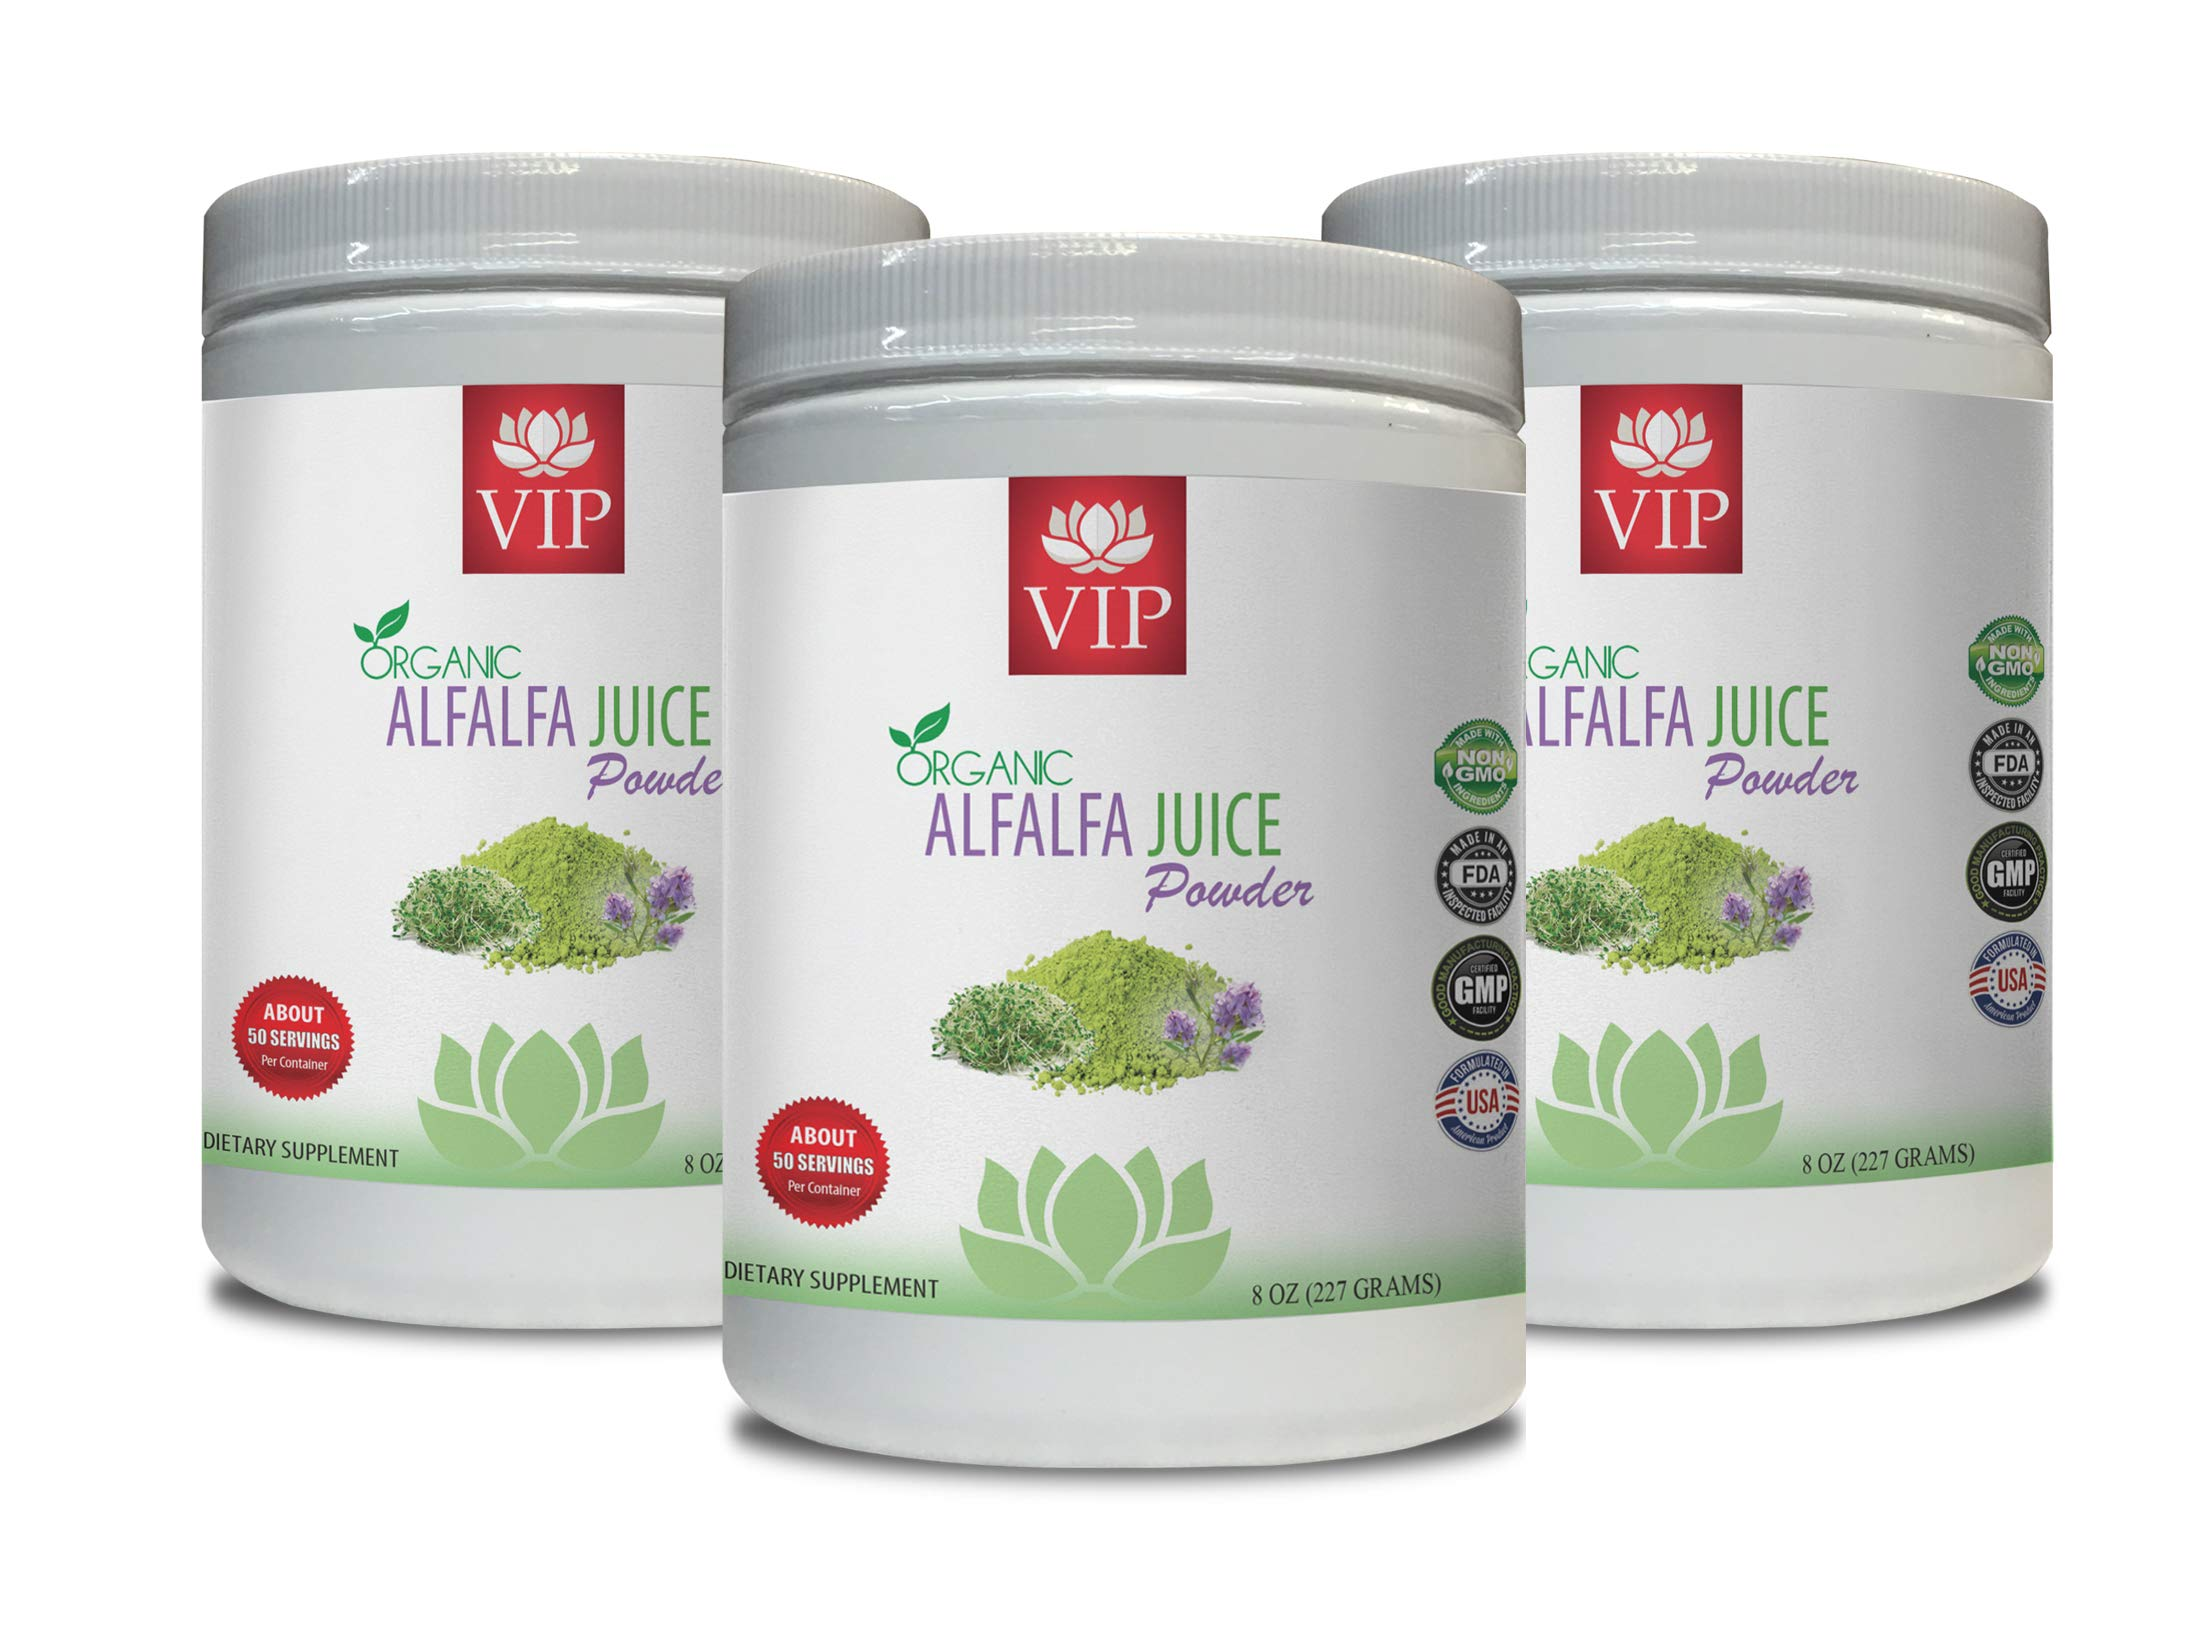 Immune System for Women - Alfalfa Organic Juice Powder - Alfalfa superfood - 3 Cans 24 OZ (150 Servings)